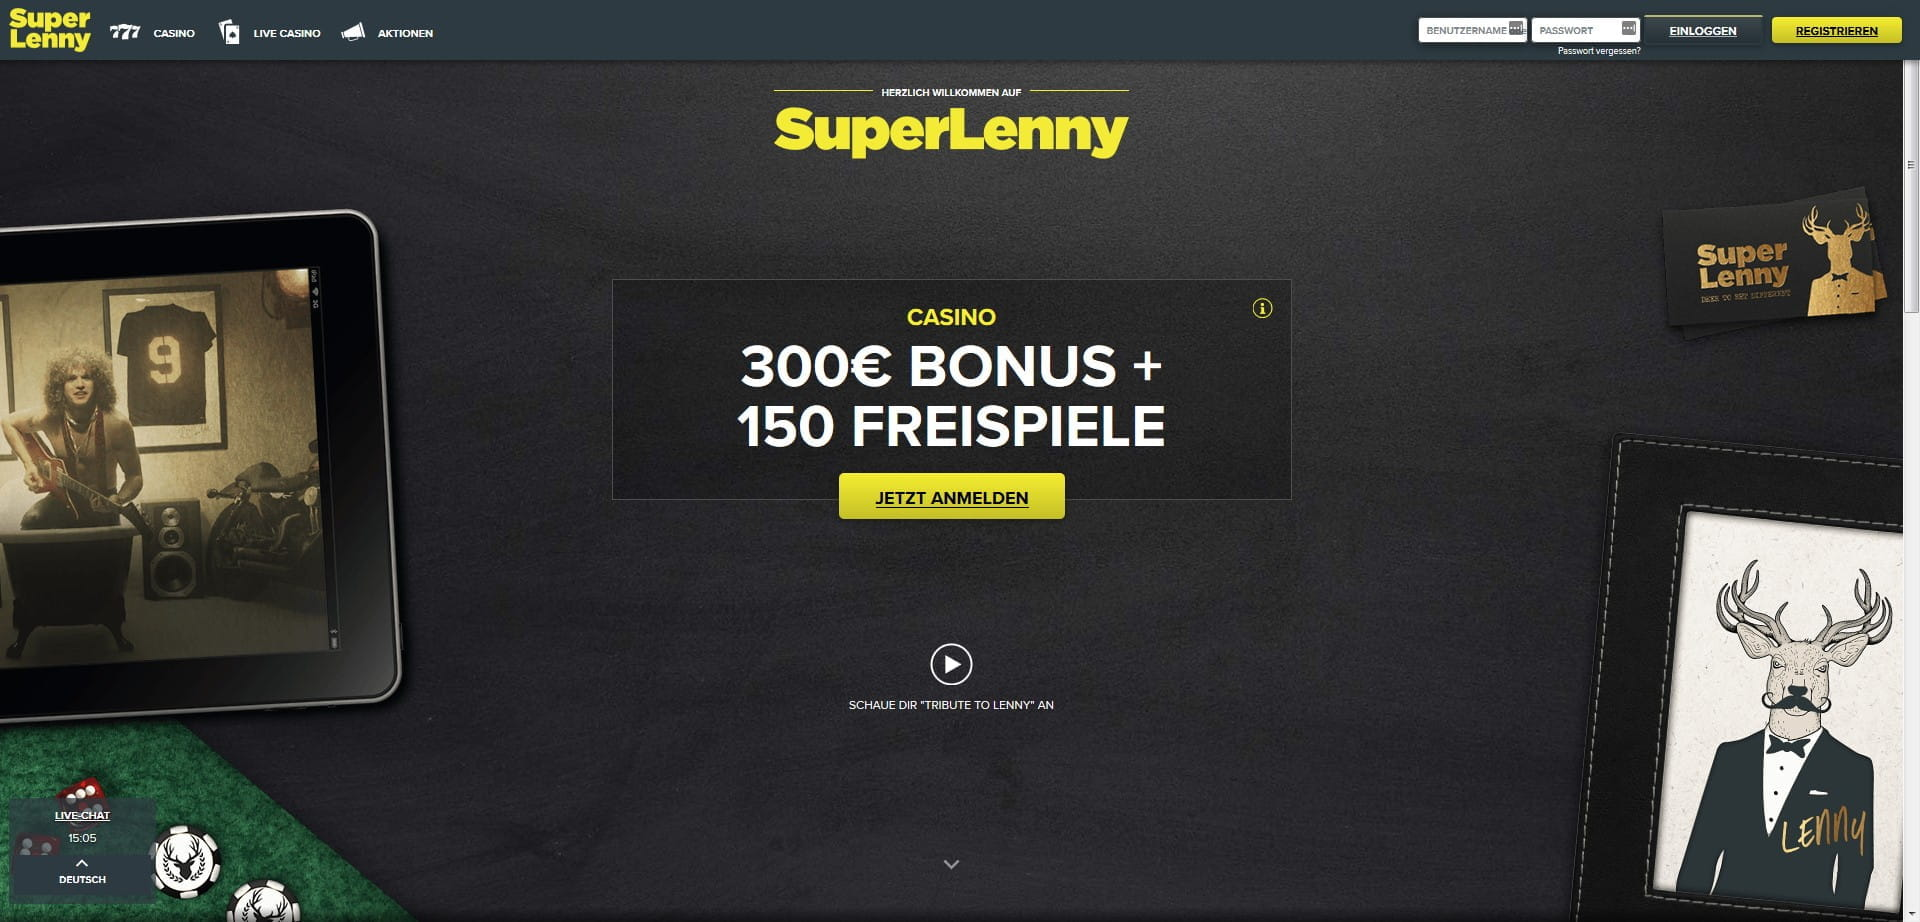 Superlenny welcome bonus